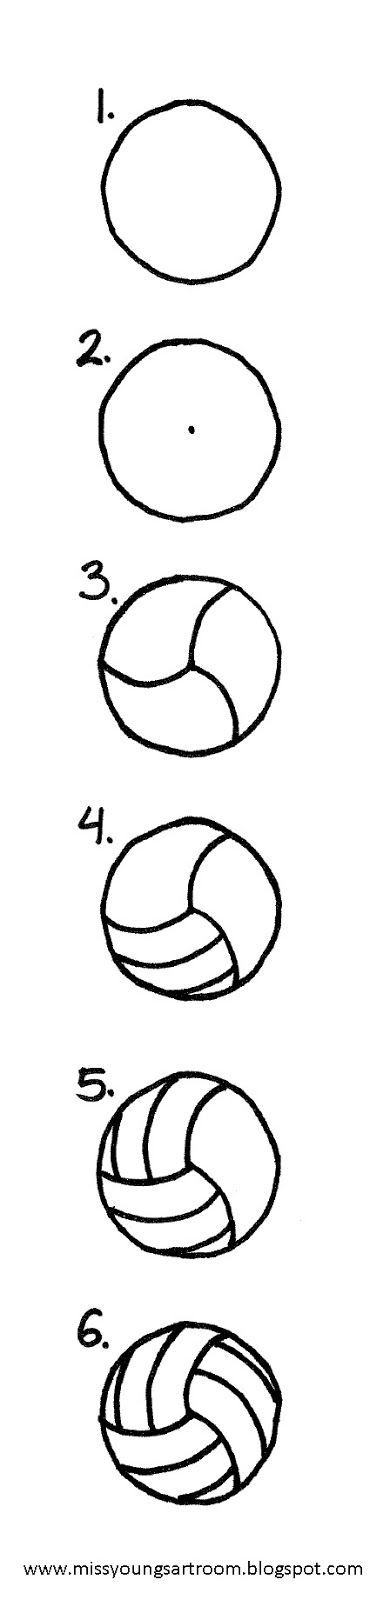 Volleyball designs on shirts and other gift ideas by Mudge . Volleyball design features Welcome to the Block Party!Cool Volleyball designs on shirts and other gift ideas by Mudge . Volleyball design features Welcome to the Block Party! Volleyball Designs, Volleyball Gifts, Volleyball Ideas, Volleyball Cupcakes, Volleyball Party, Volleyball Birthday Cakes, Volleyball Nails, Cheerleading Gifts, Basketball Gifts